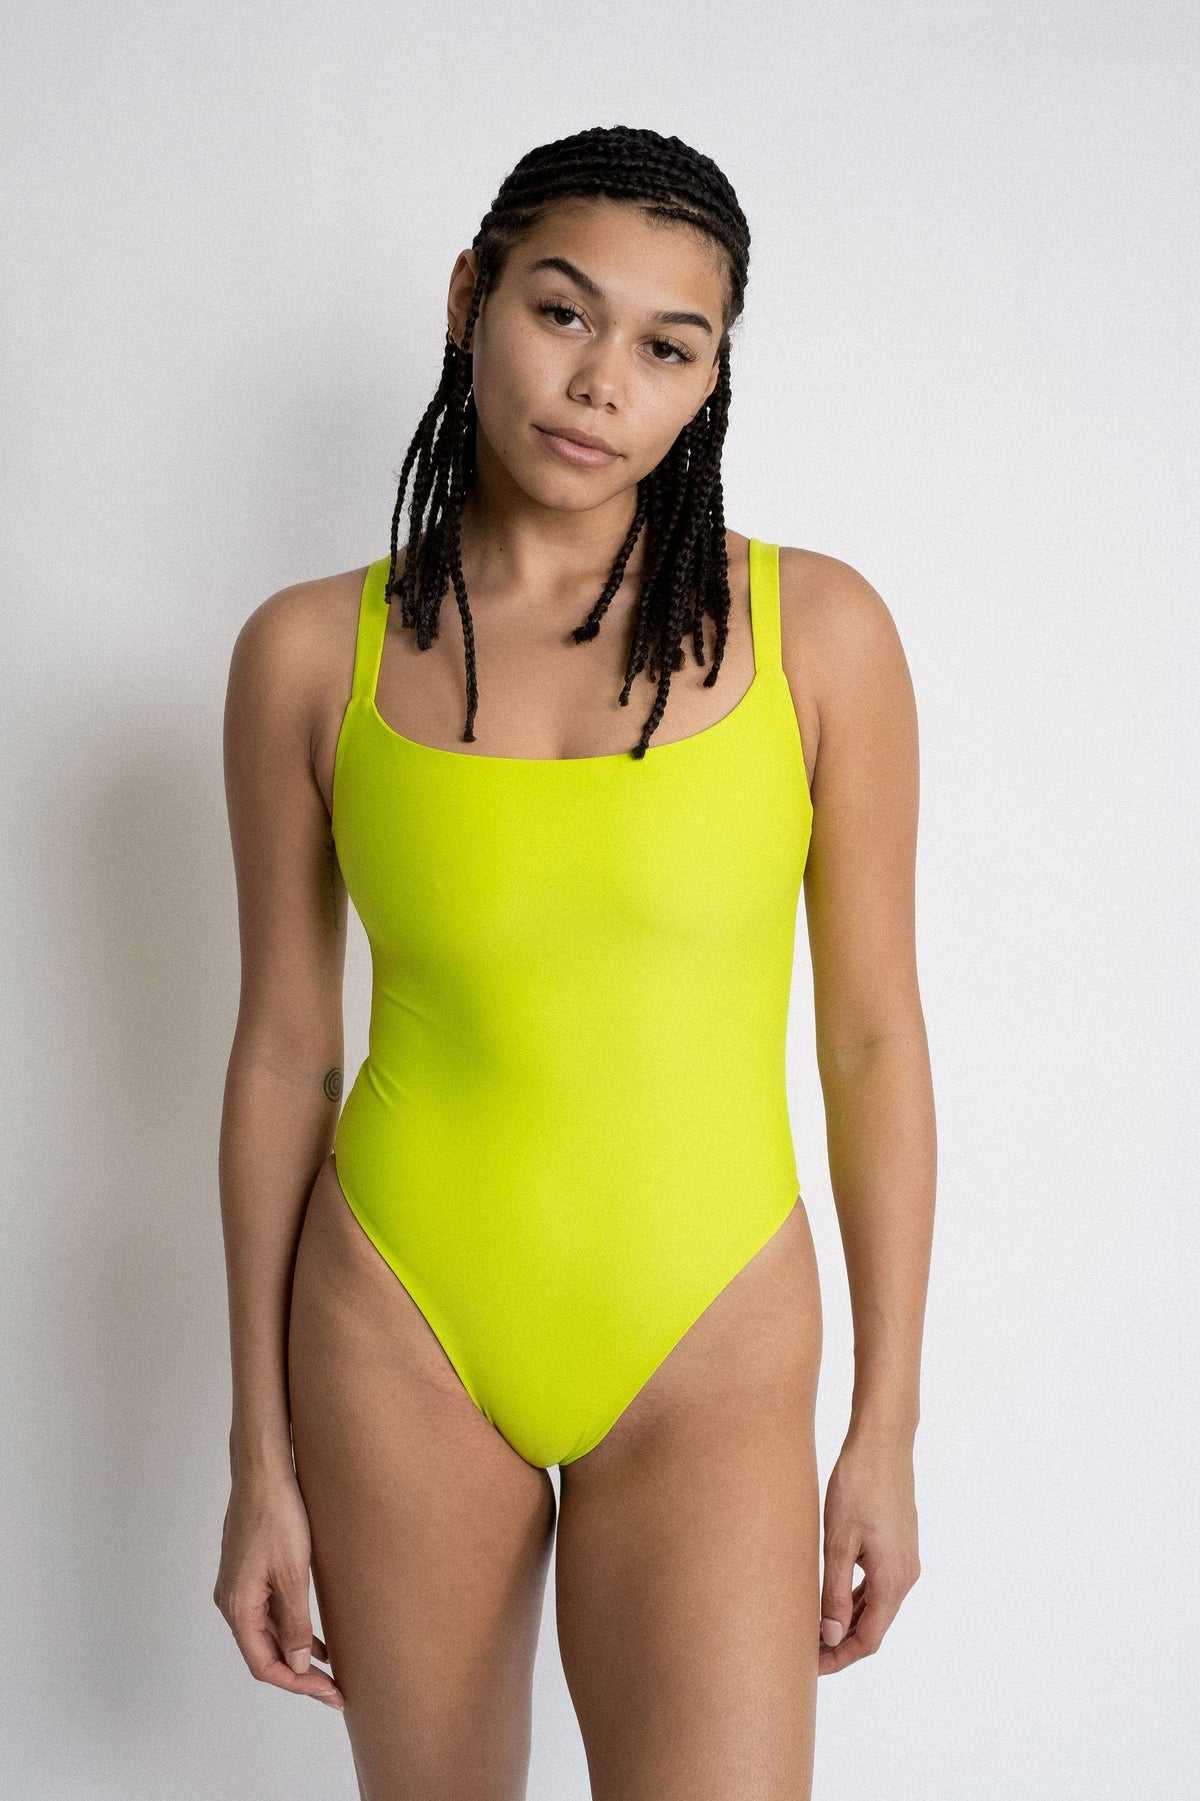 A woman standing in front of a white wall wearing a neon green one piece swimsuit with a straight neckline.